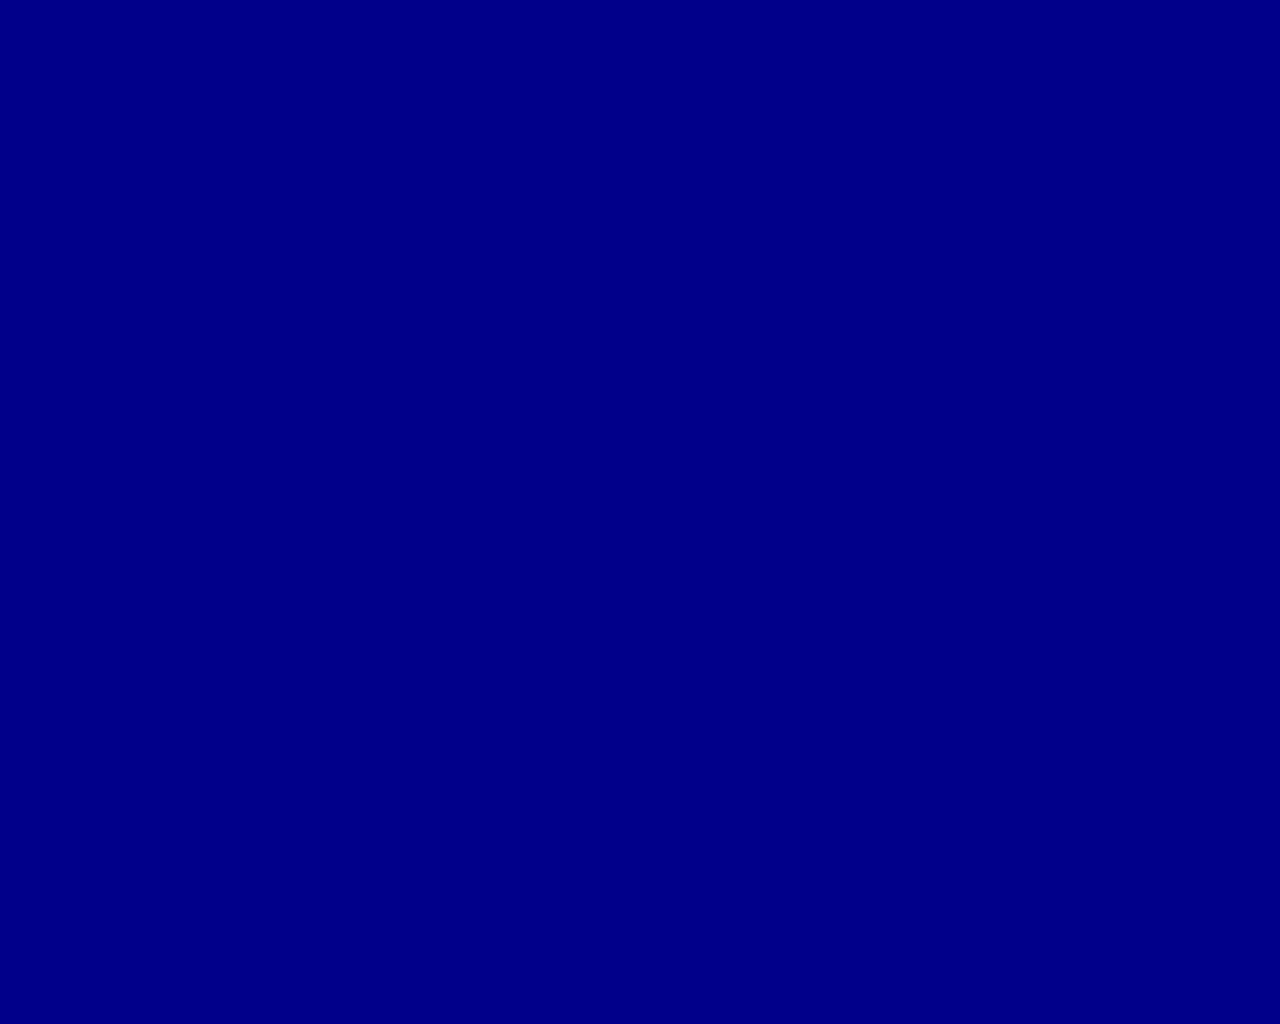 Blue solid color background view and download the below background 1280x1024